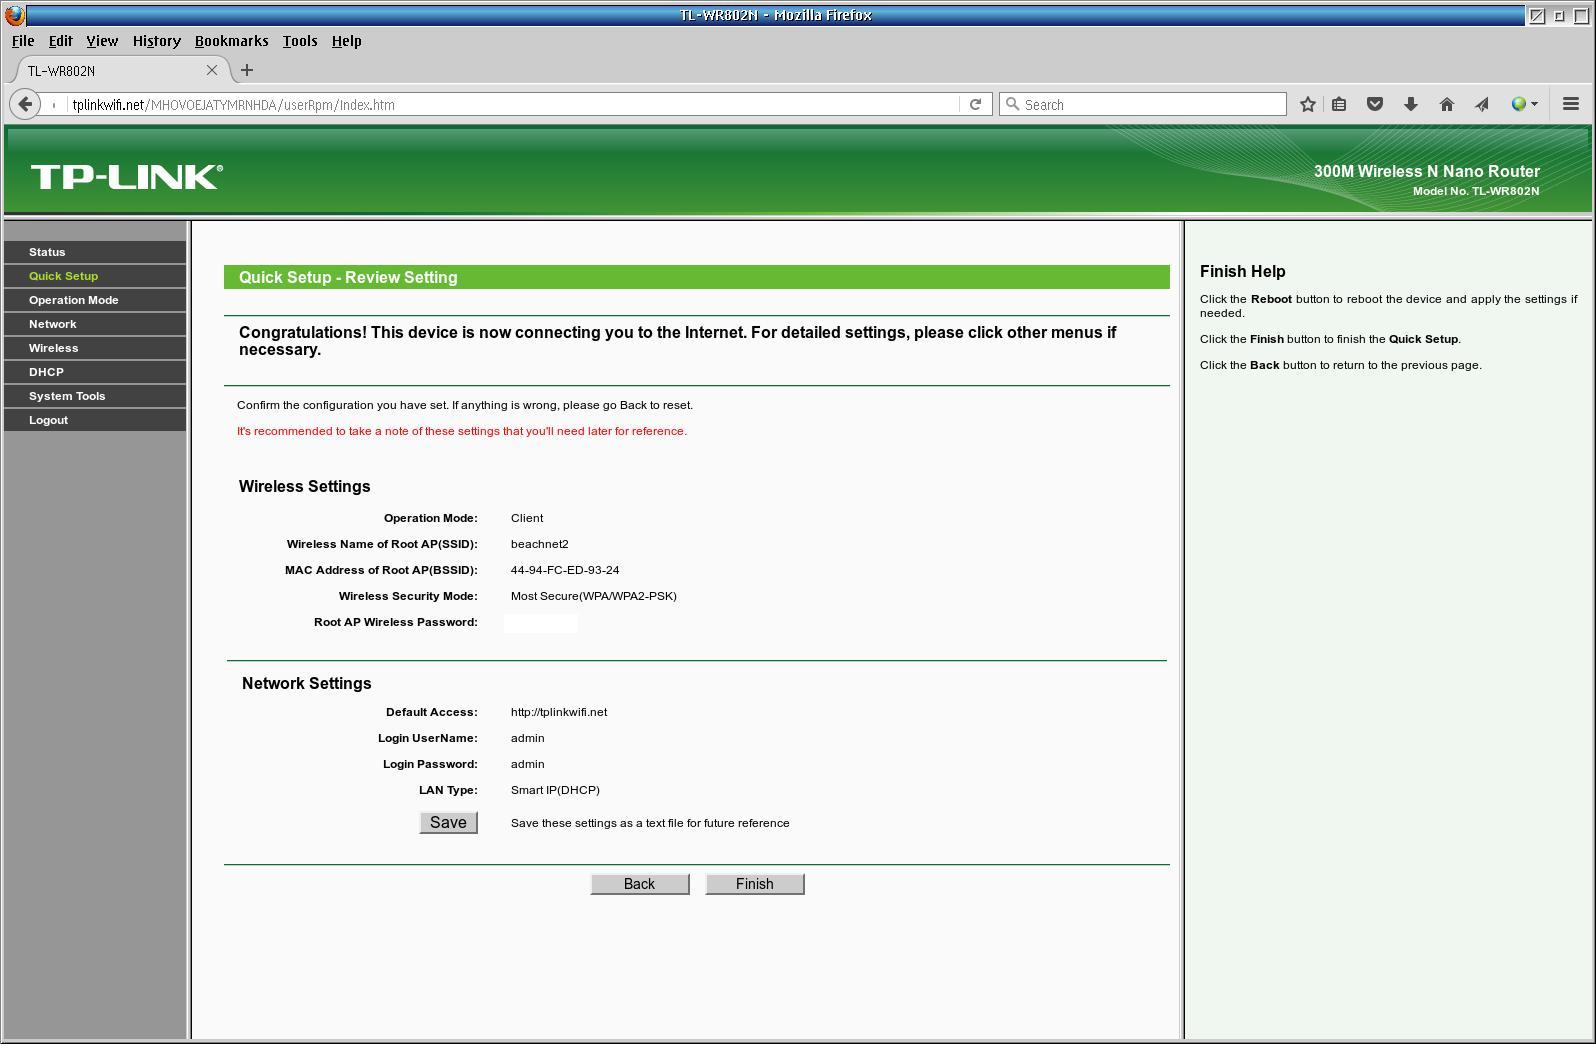 TPLink Quick Setup Screen 6